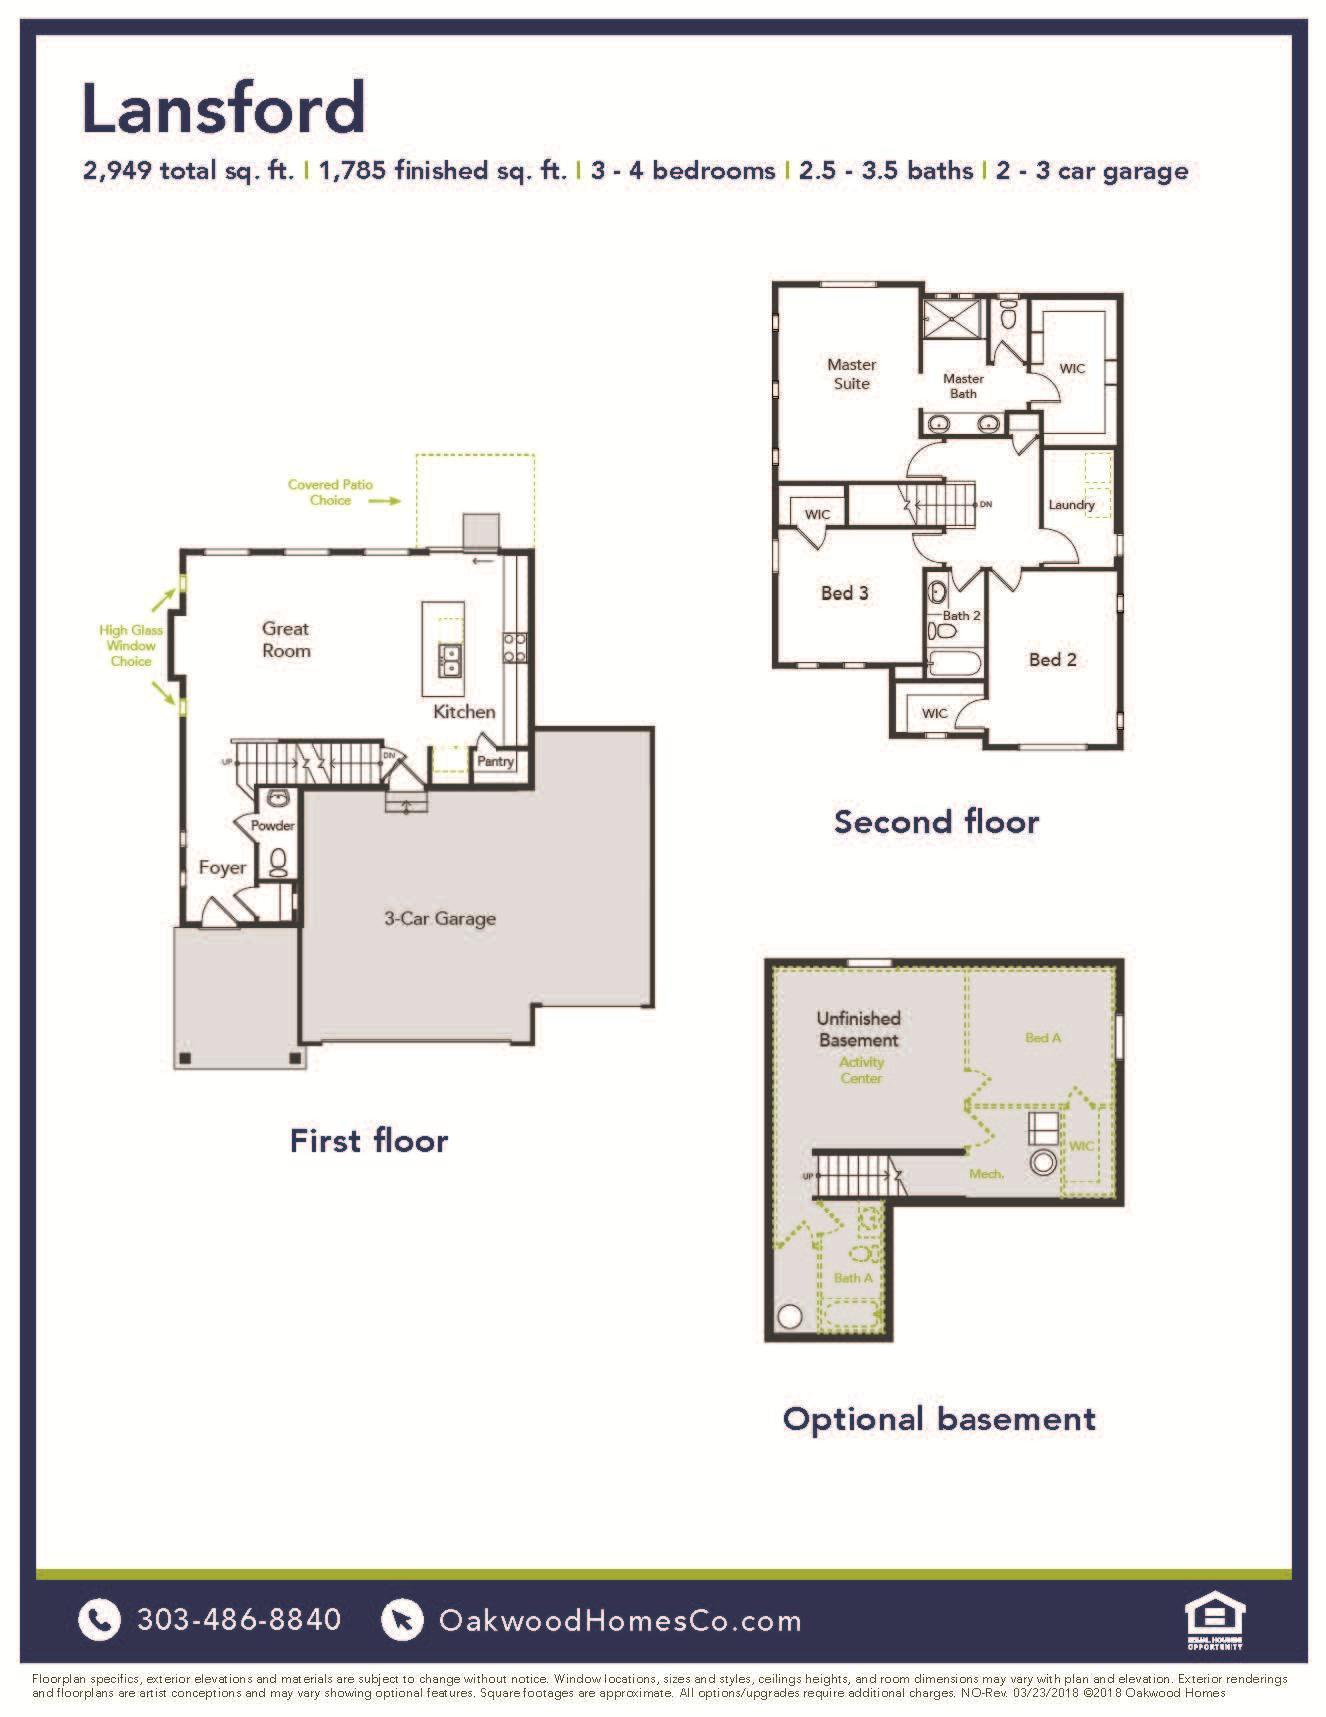 Lansford Plan At Thompson River Ranch In Johnstown Co By Oakwood Homes Colorado